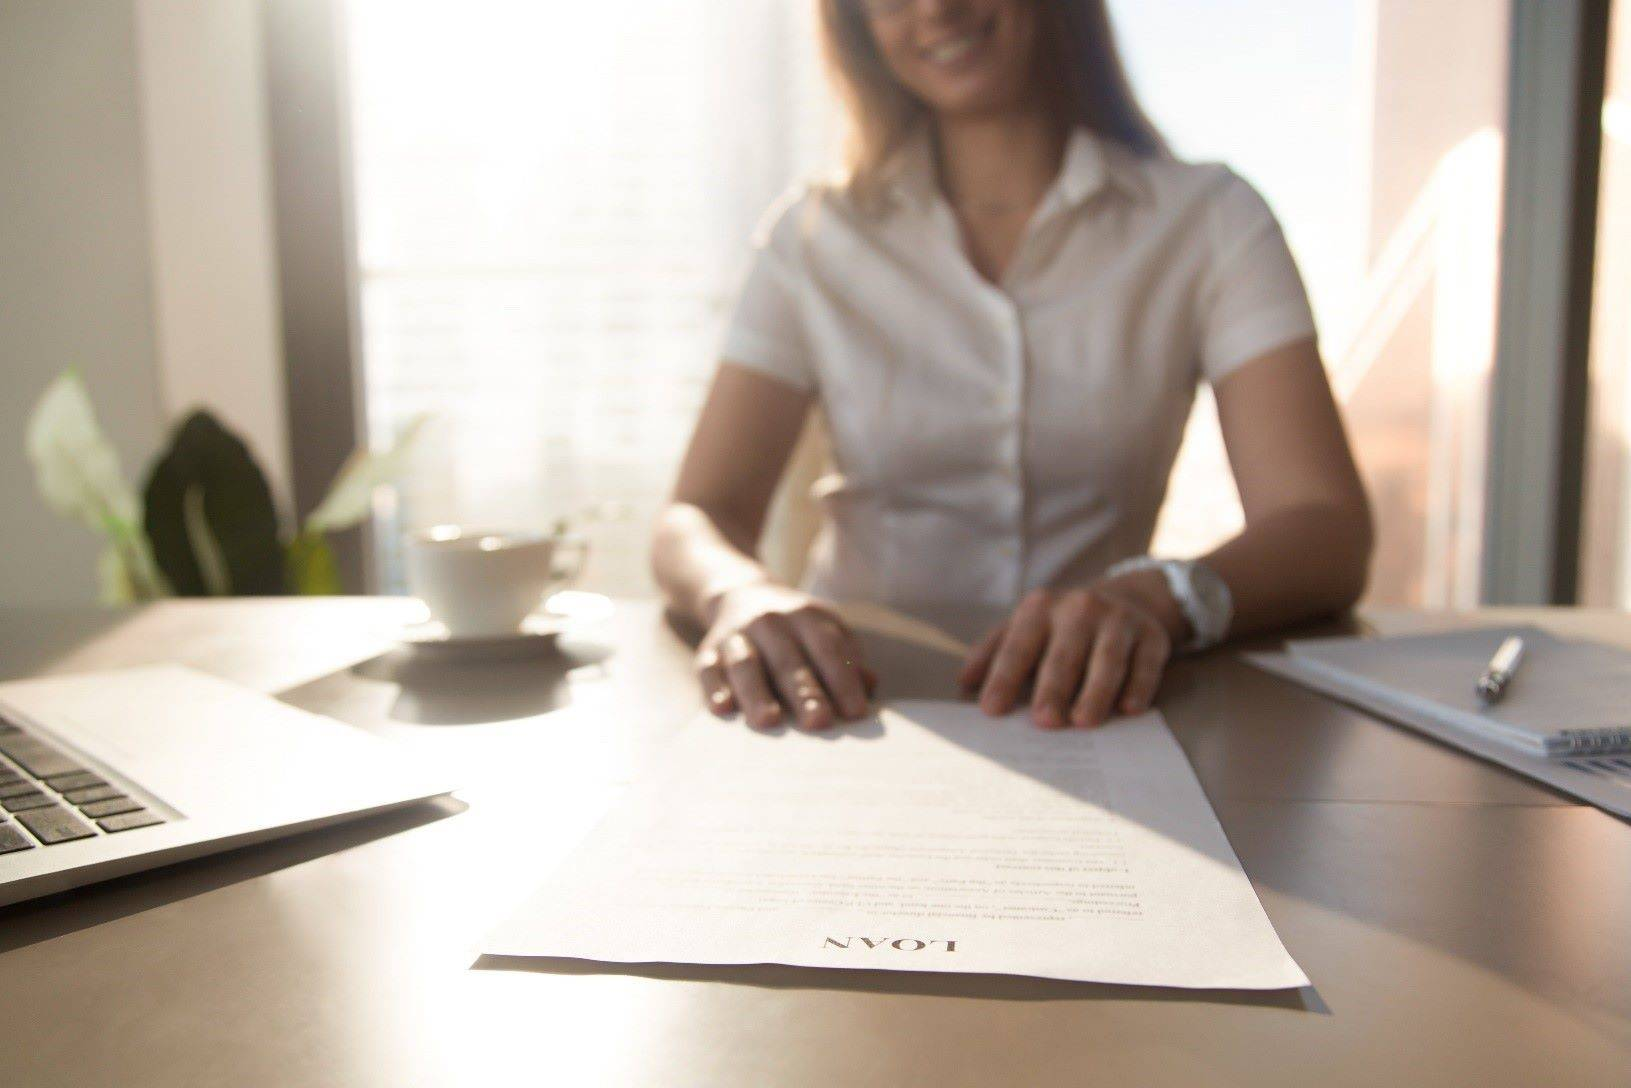 Woman works on her personal loan application